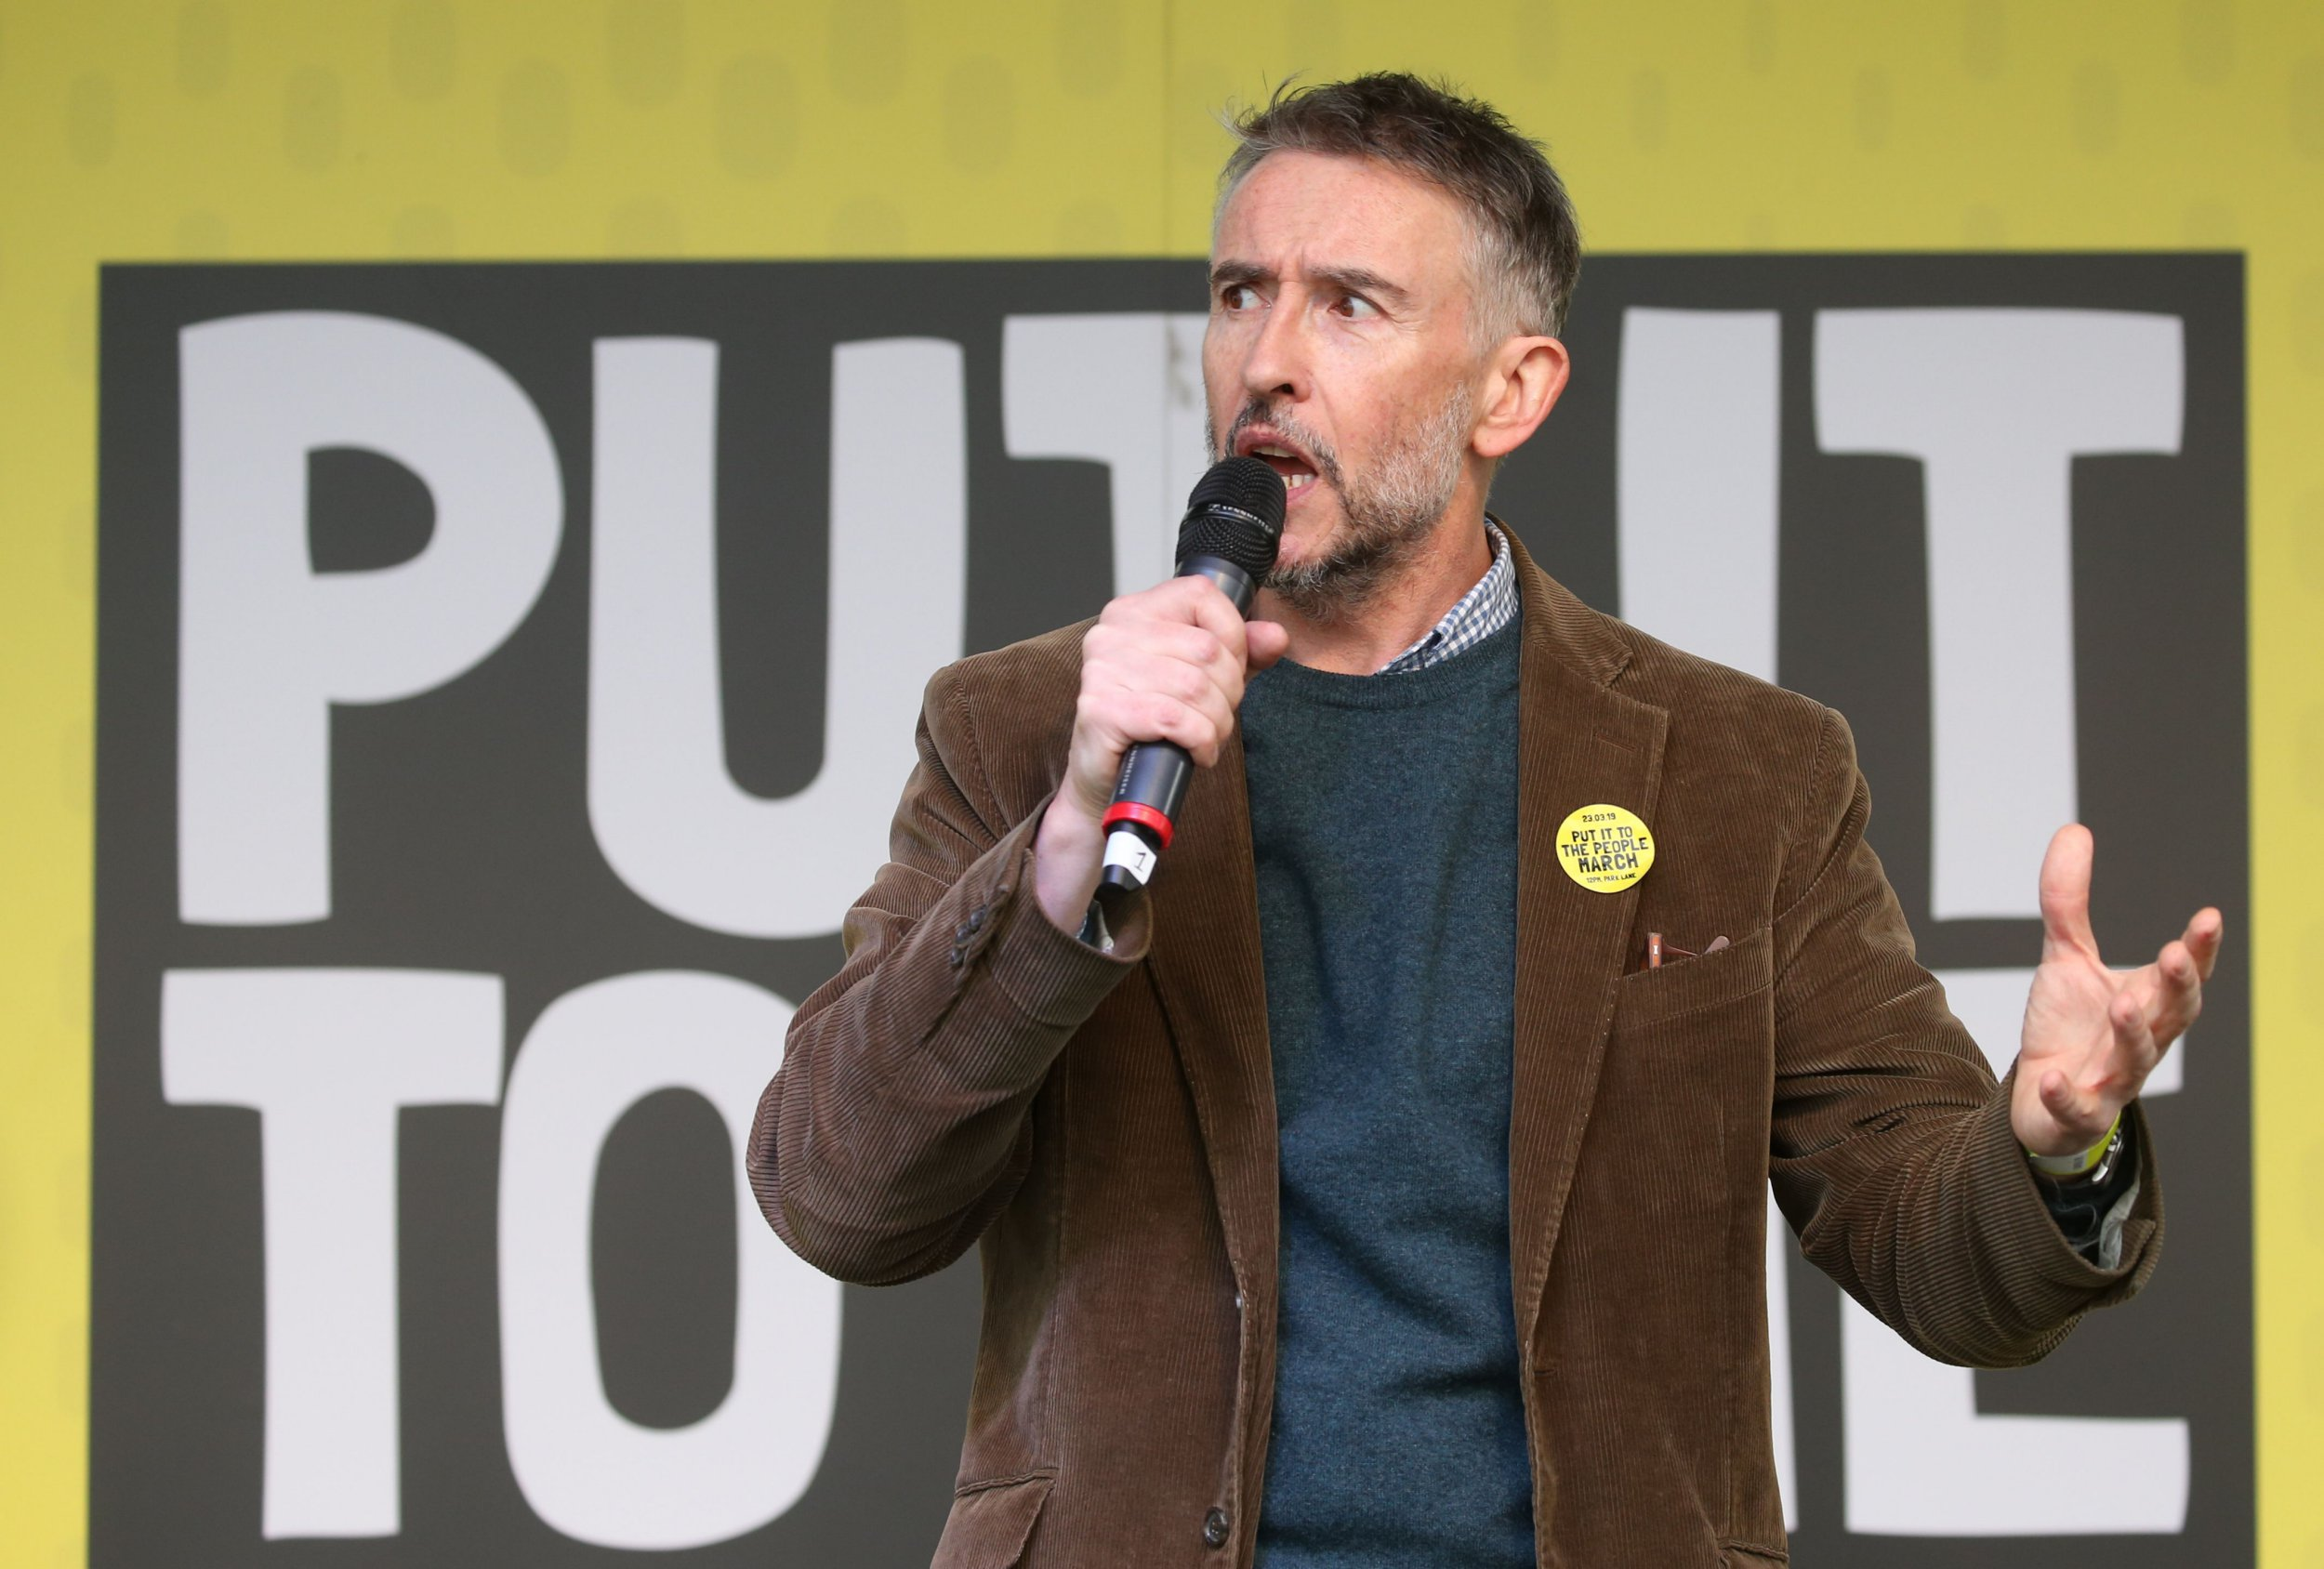 British actor and comedian Steve Coogan speaks at a rally organised by the pro-European People's Vote campaign for a second EU referendum in Parliament Square, central London on March 23, 2019. - Hundreds of thousands of pro-Europeans from across Britain were expected to march through London on Saturday calling for another referendum on EU membership with the country mired in political paralysis over Brexit. (Photo by Isabel INFANTES / AFP)ISABEL INFANTES/AFP/Getty Images